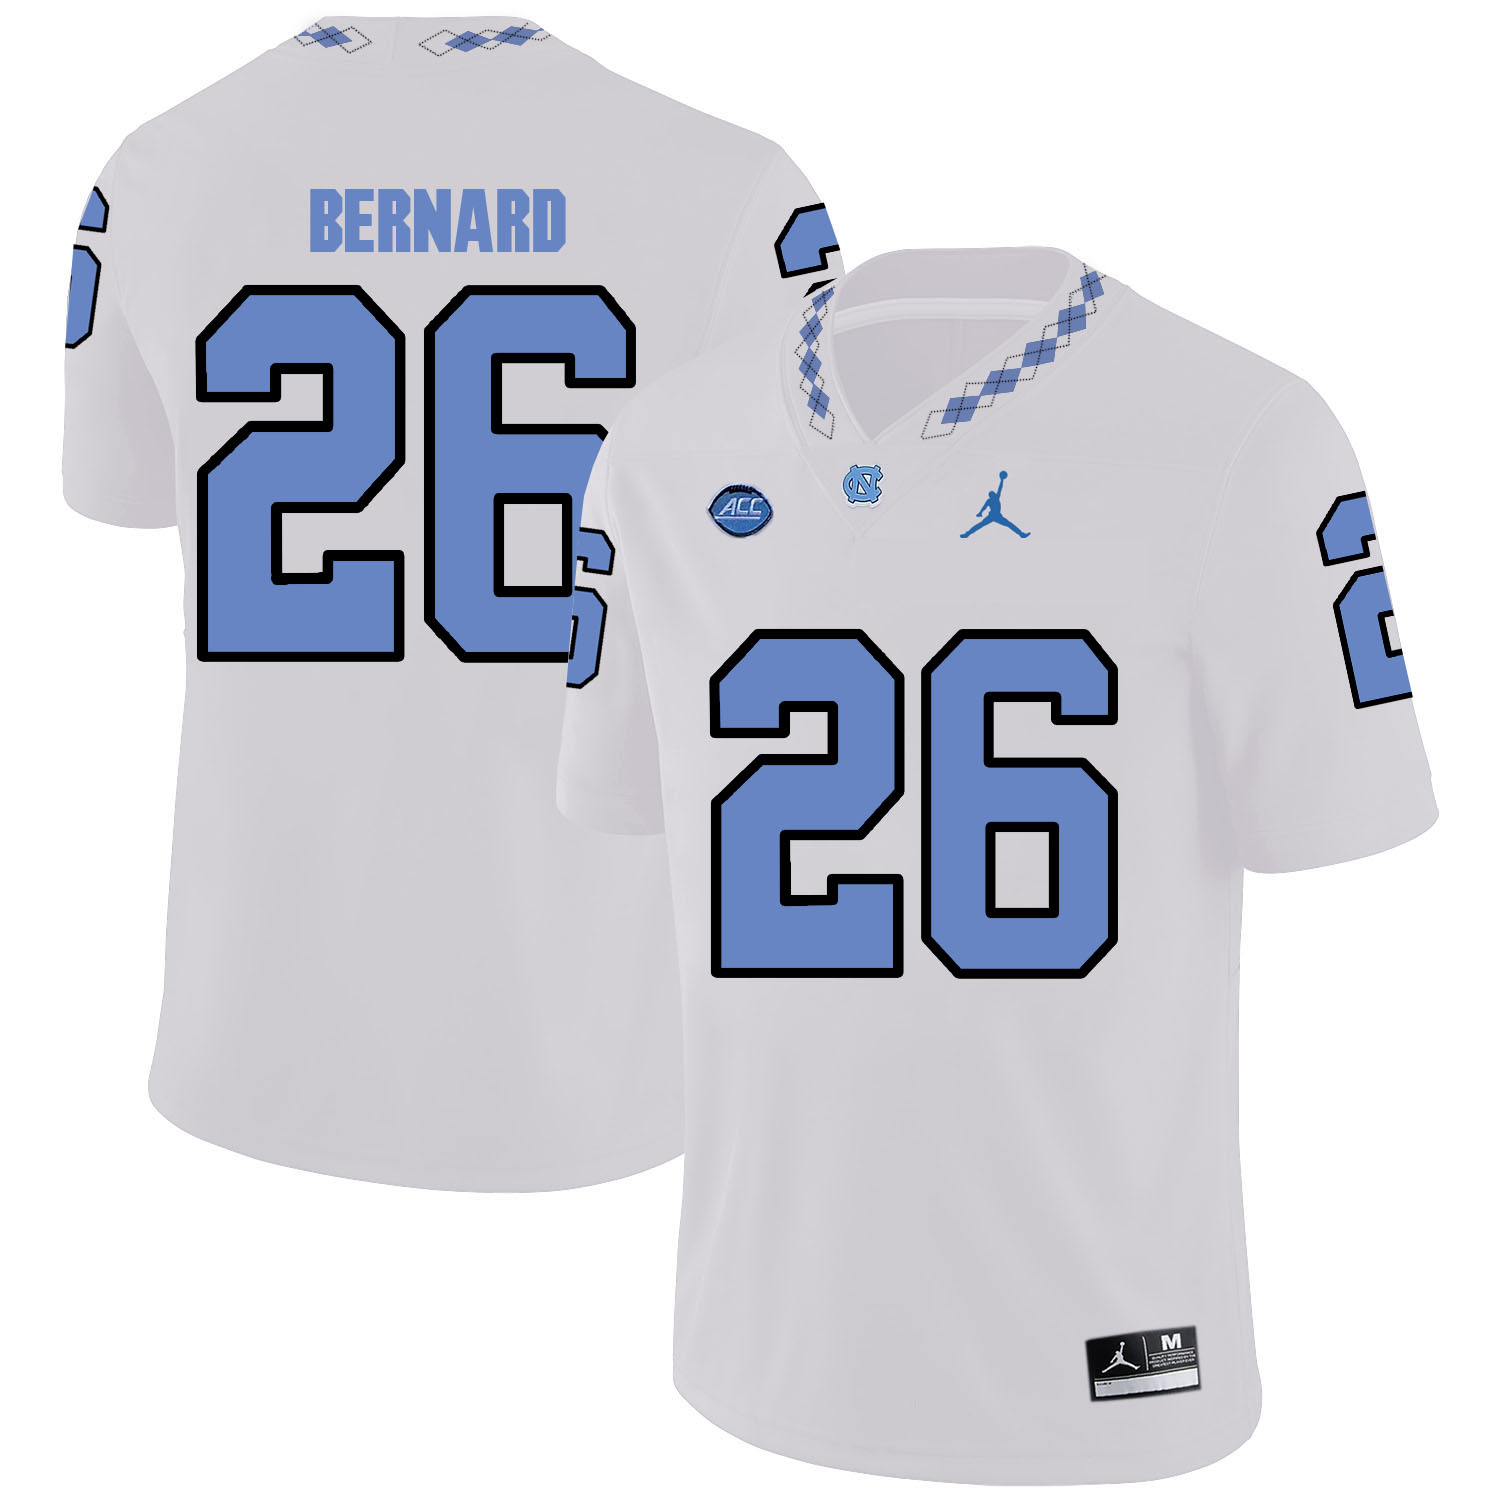 North Carolina Tar Heels 26 Giovani Bernard White College Football Jersey